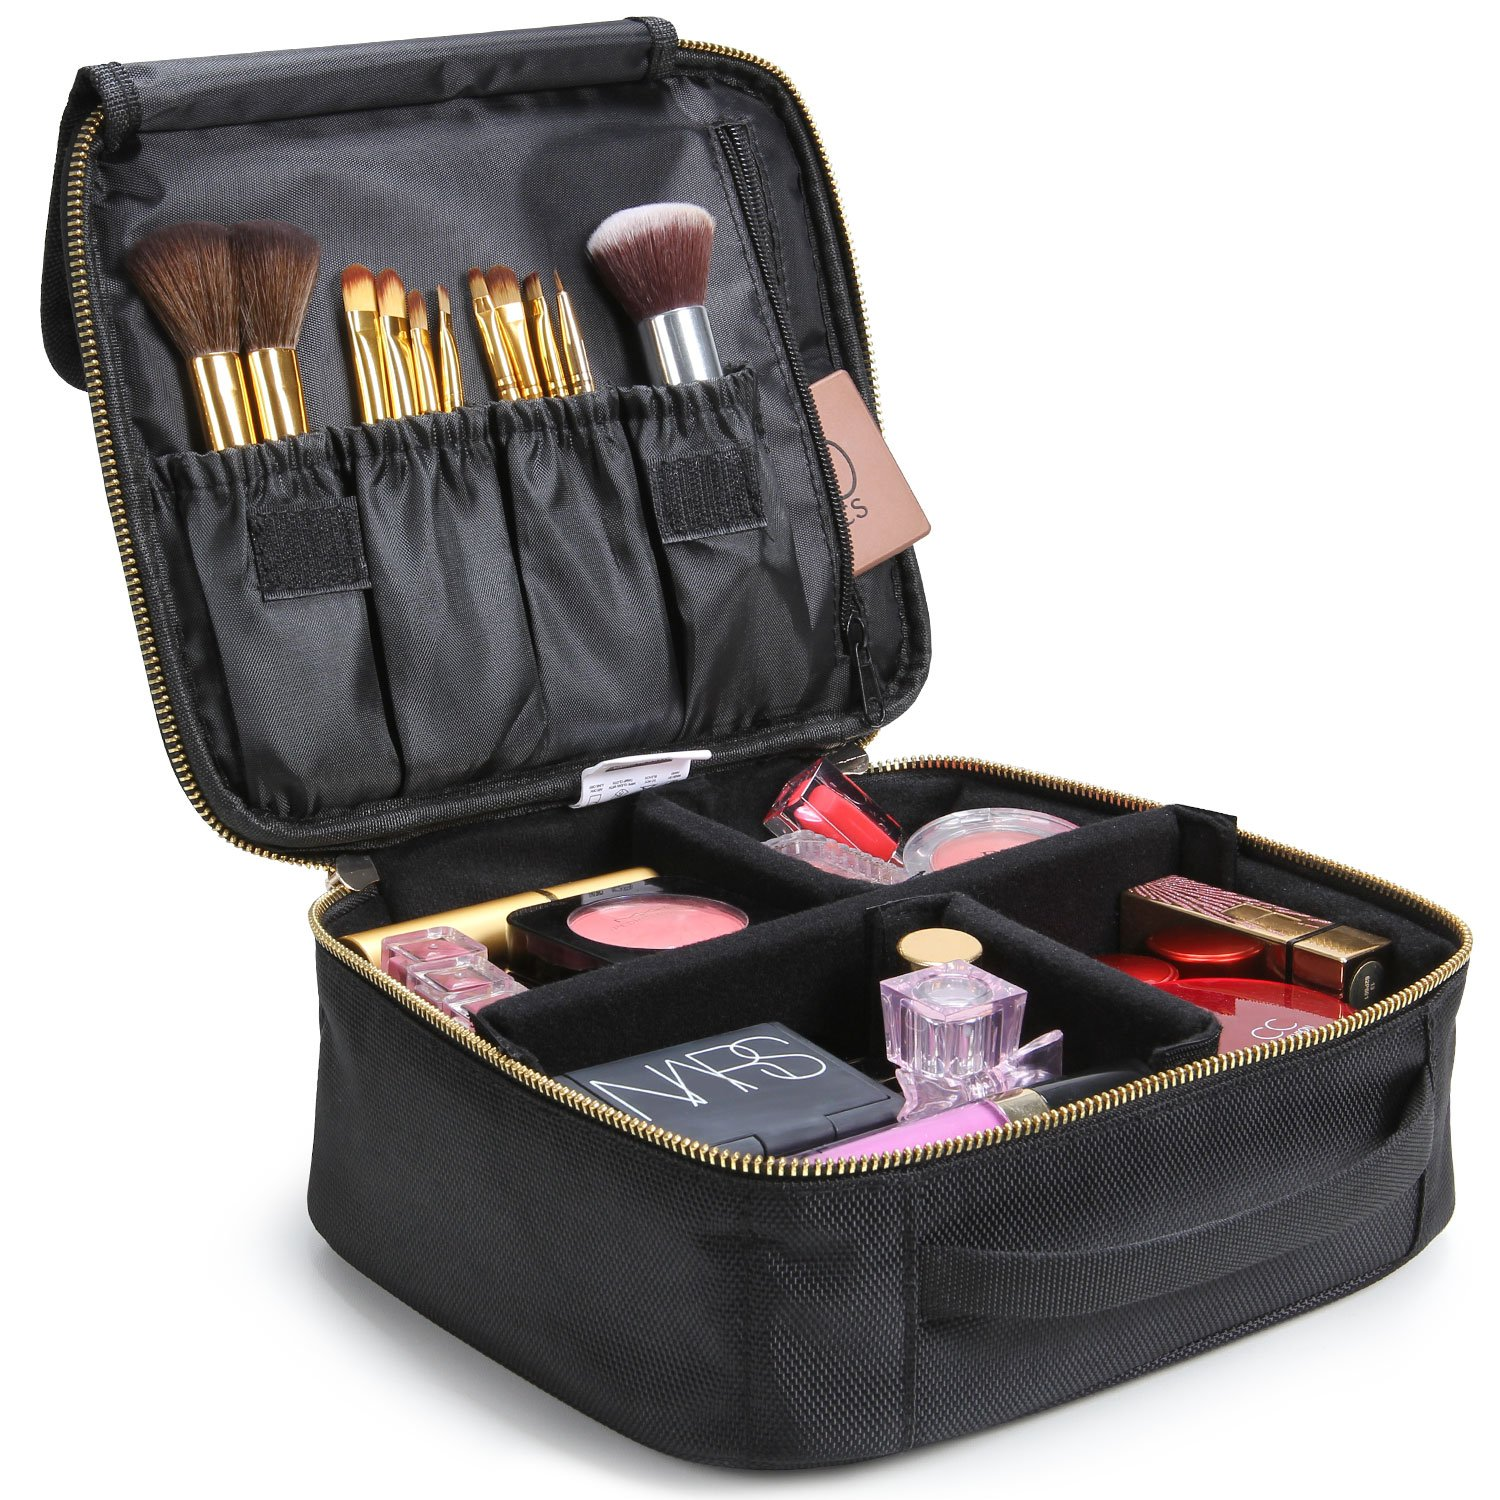 07c007f1b5 Amazon.com   Lifewit Makeup Train Case with Adjustable Dividers Travel  Cosmetic Bag Organize Case with Brush Holders